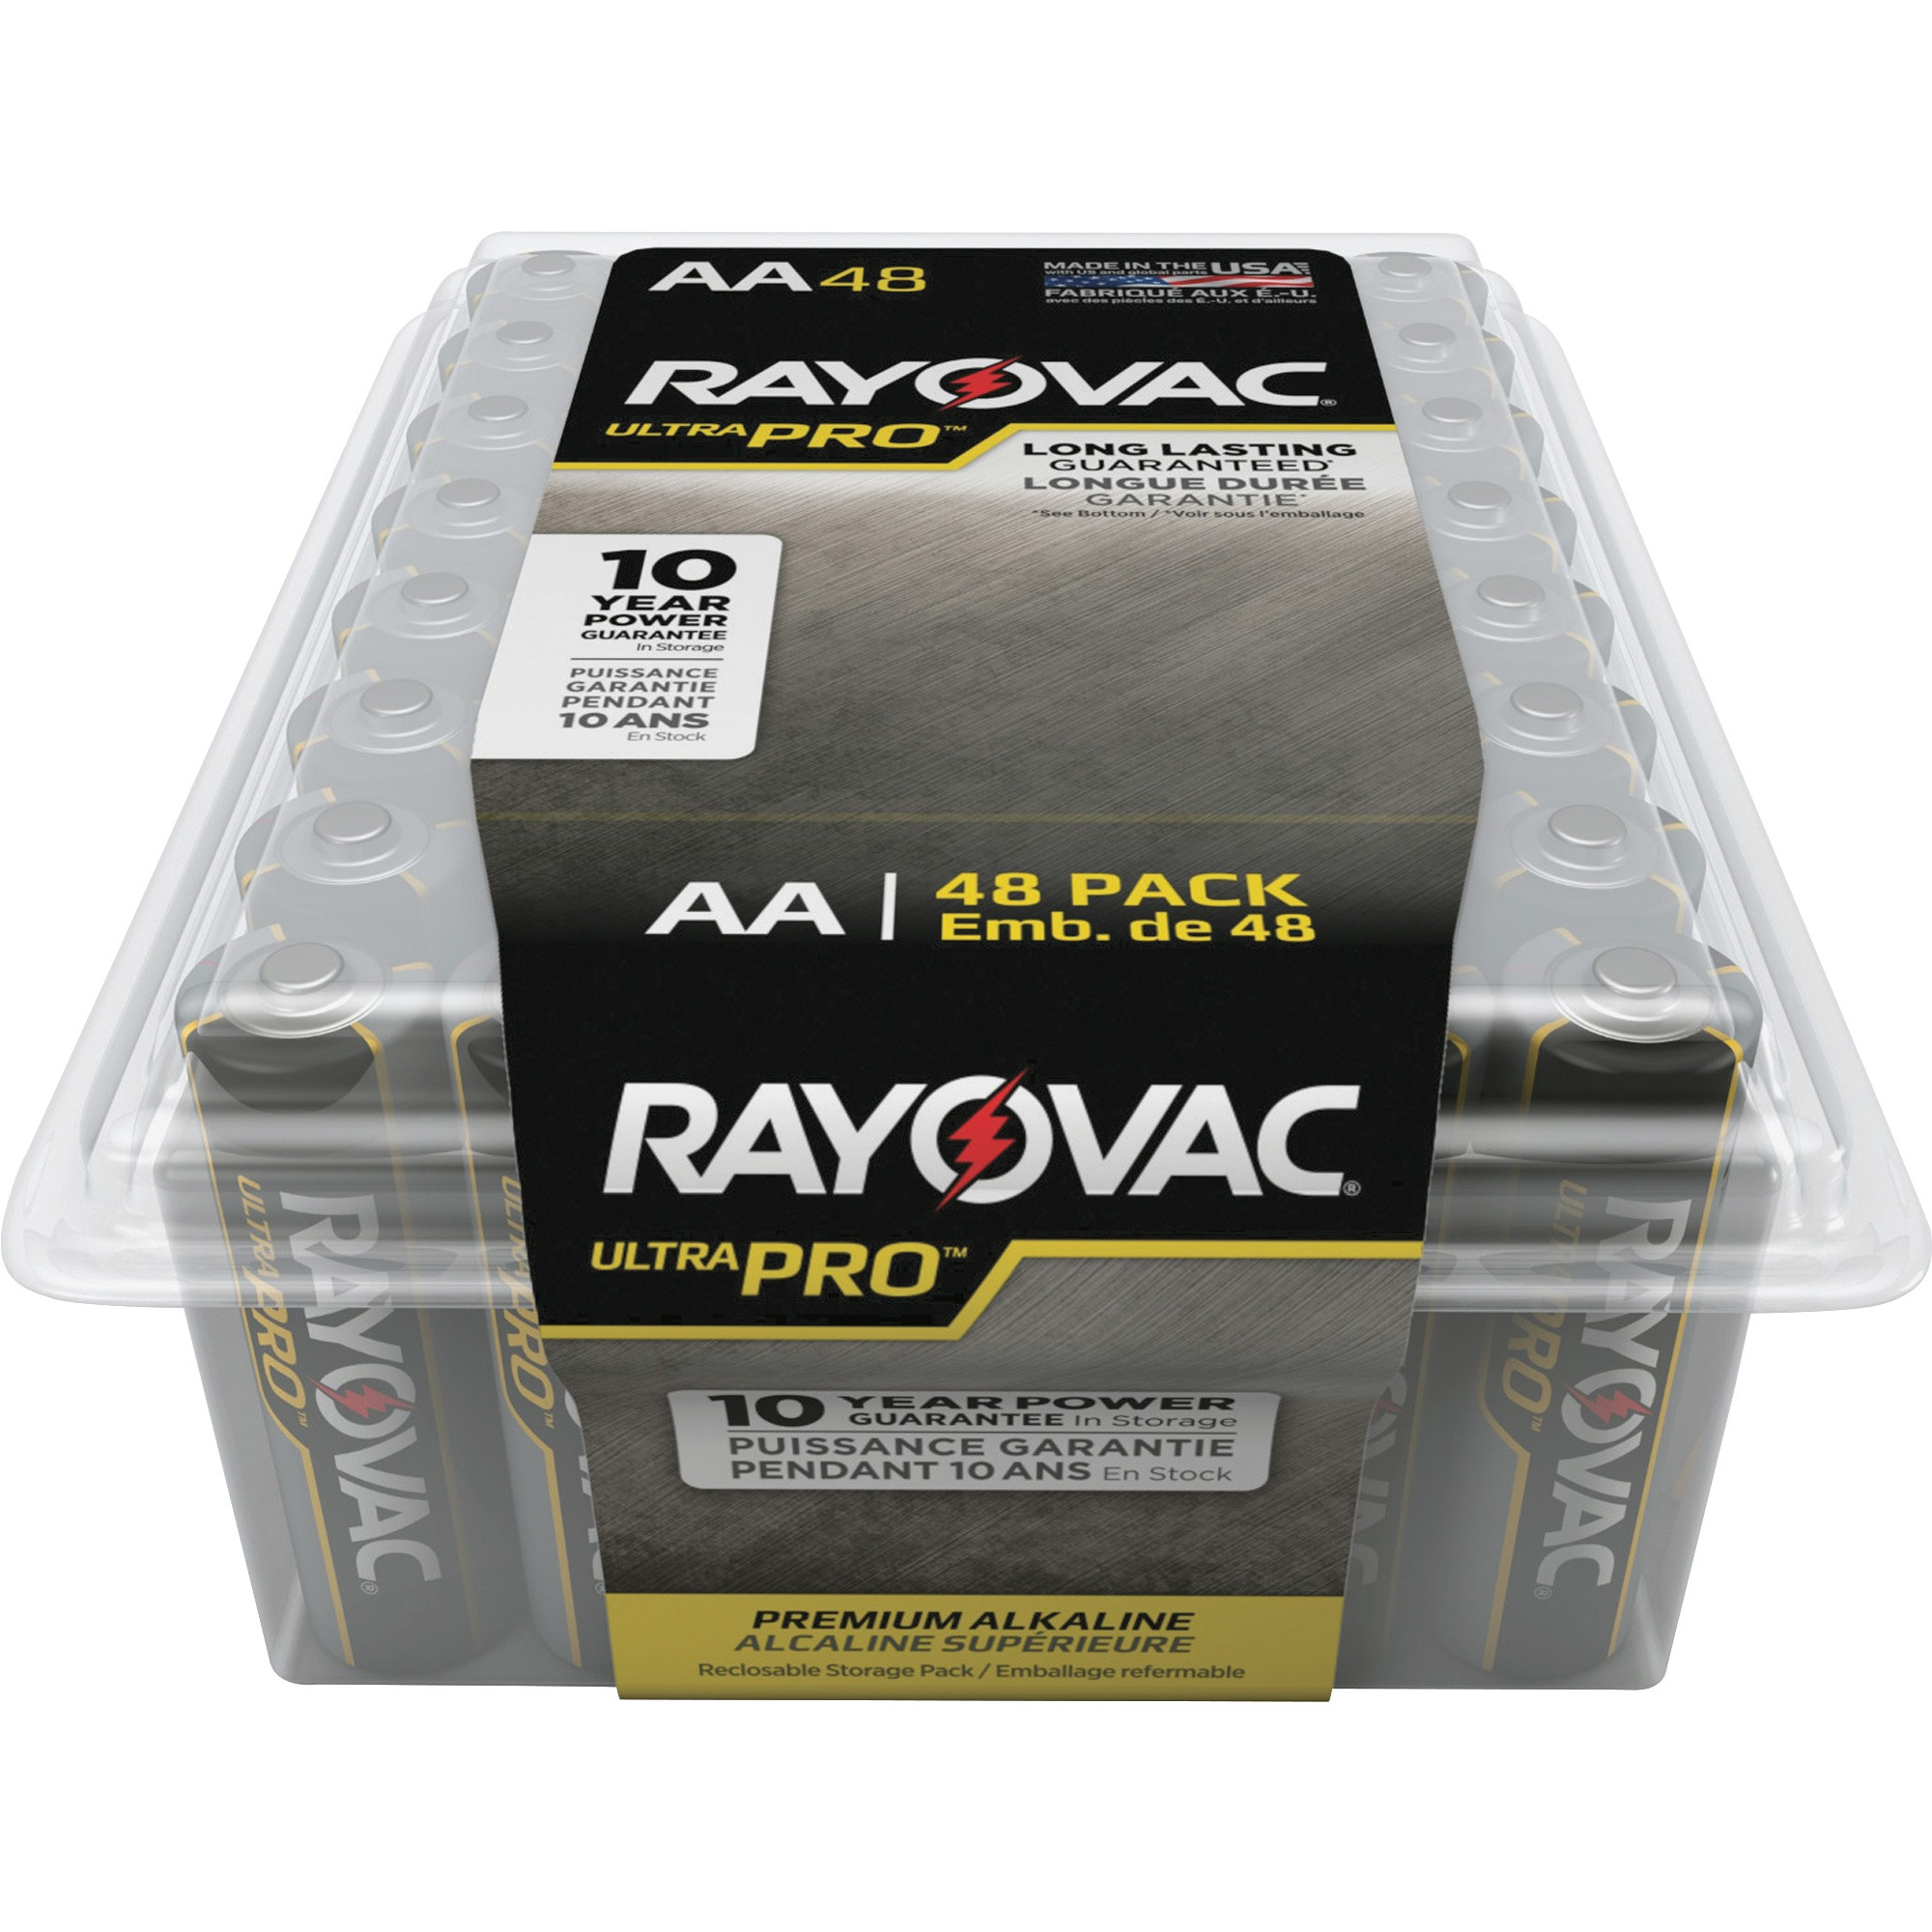 Rayovac Ultra Pro Alkaline AA Batteries, 48 Count